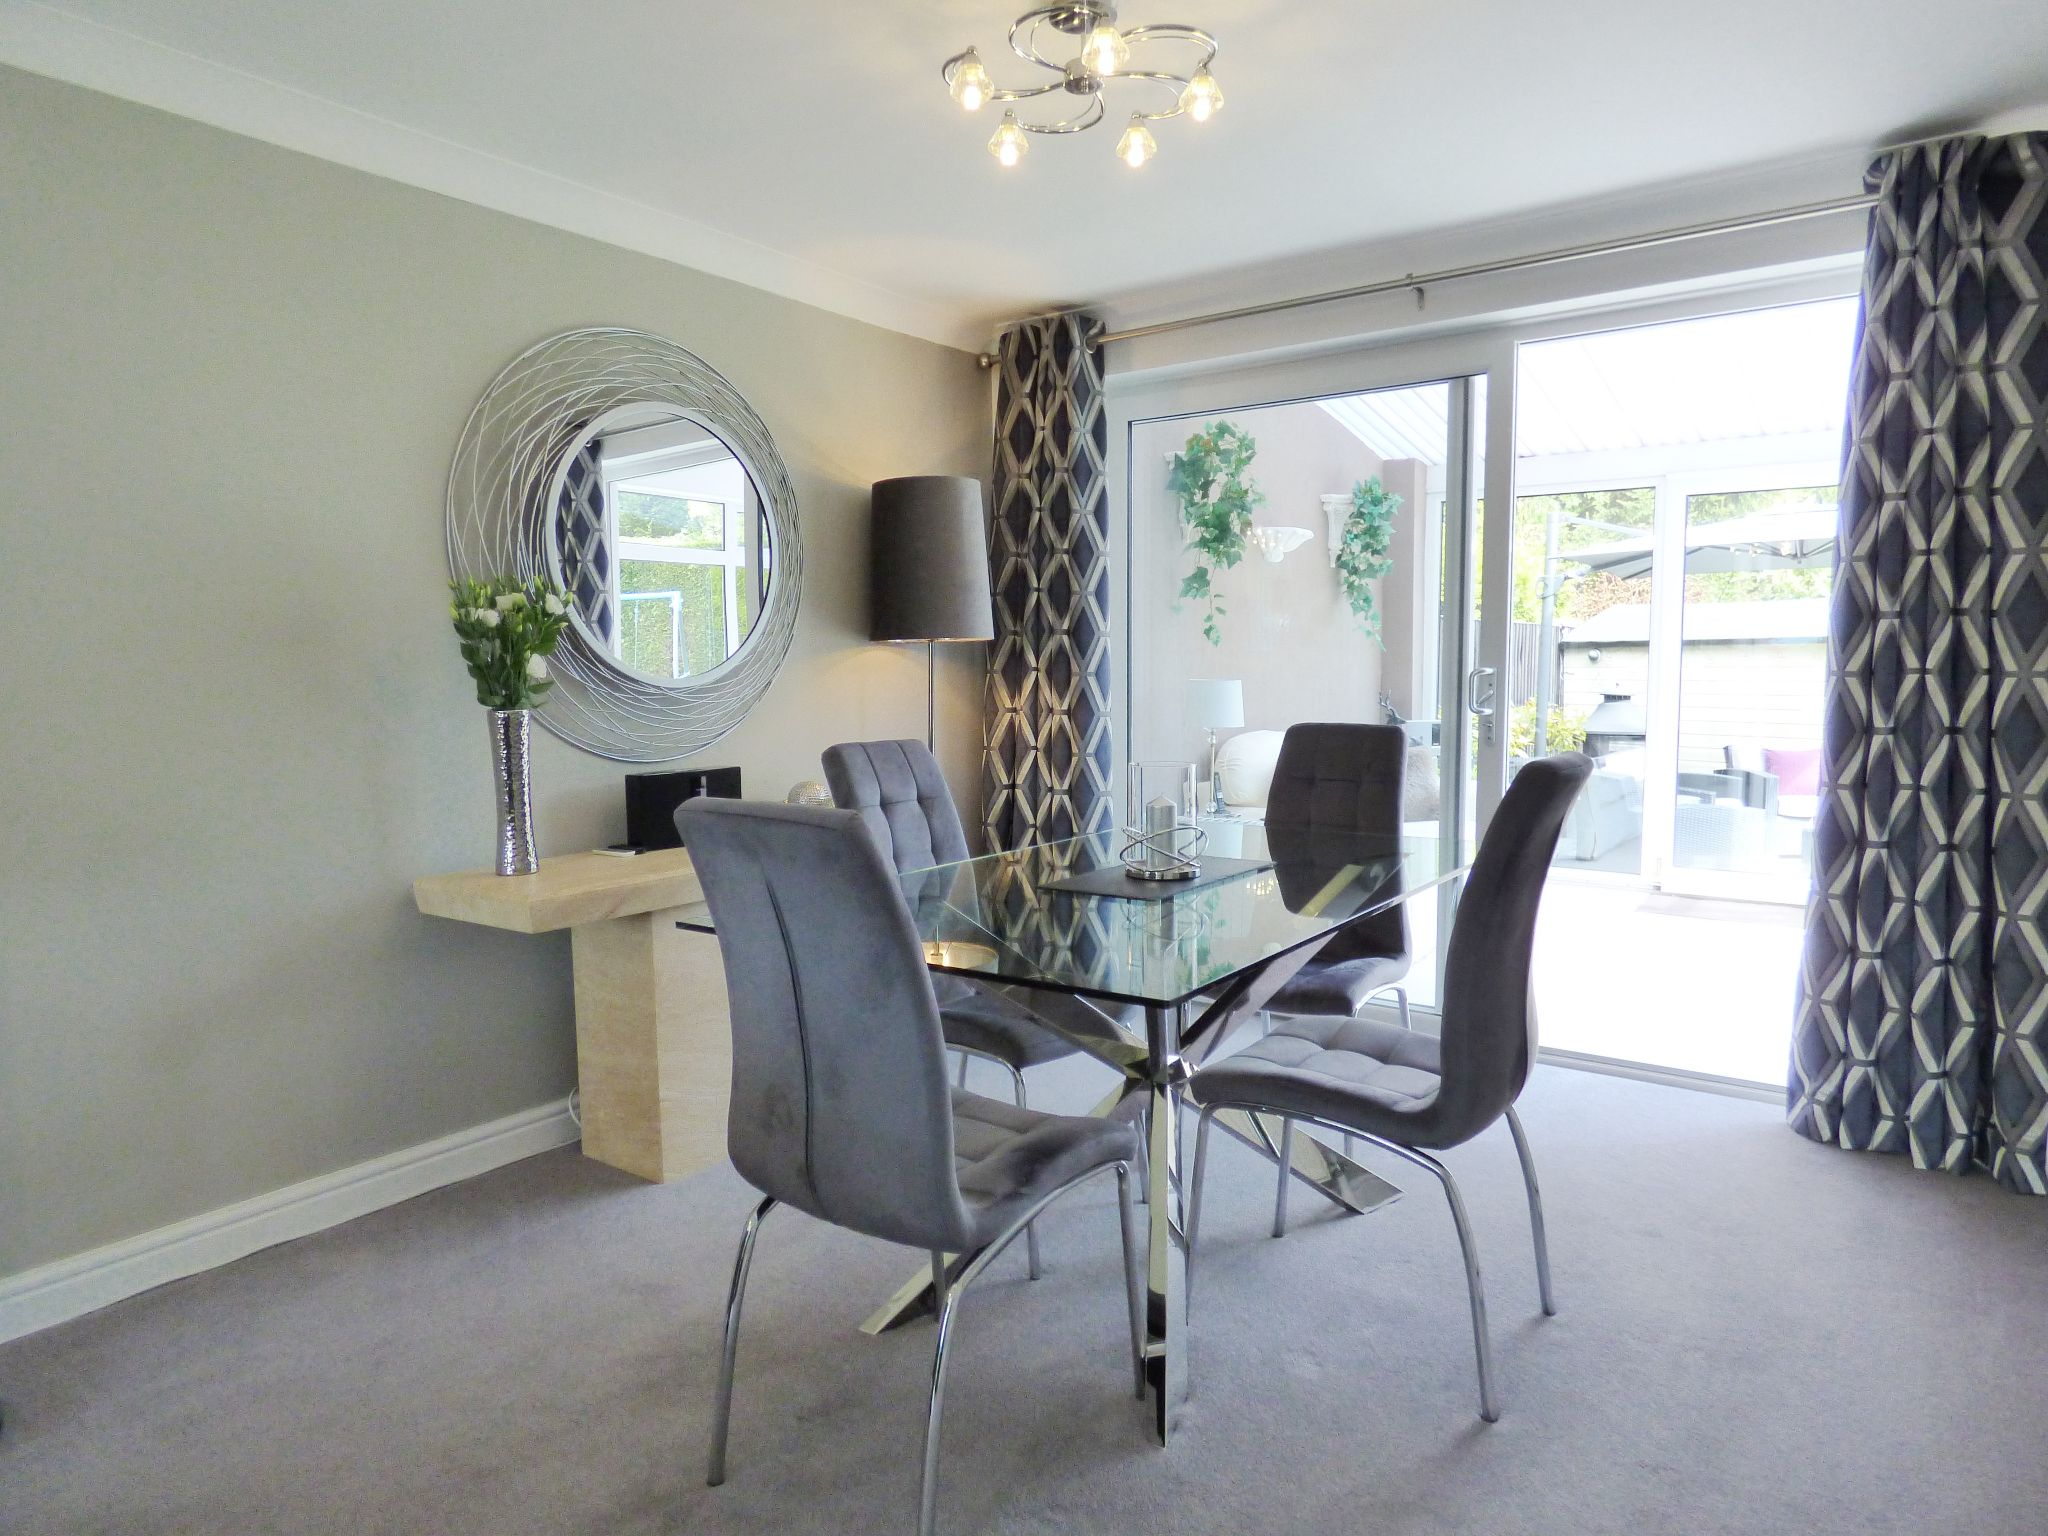 5 Bedroom Semi-detached House For Sale - Dining Area